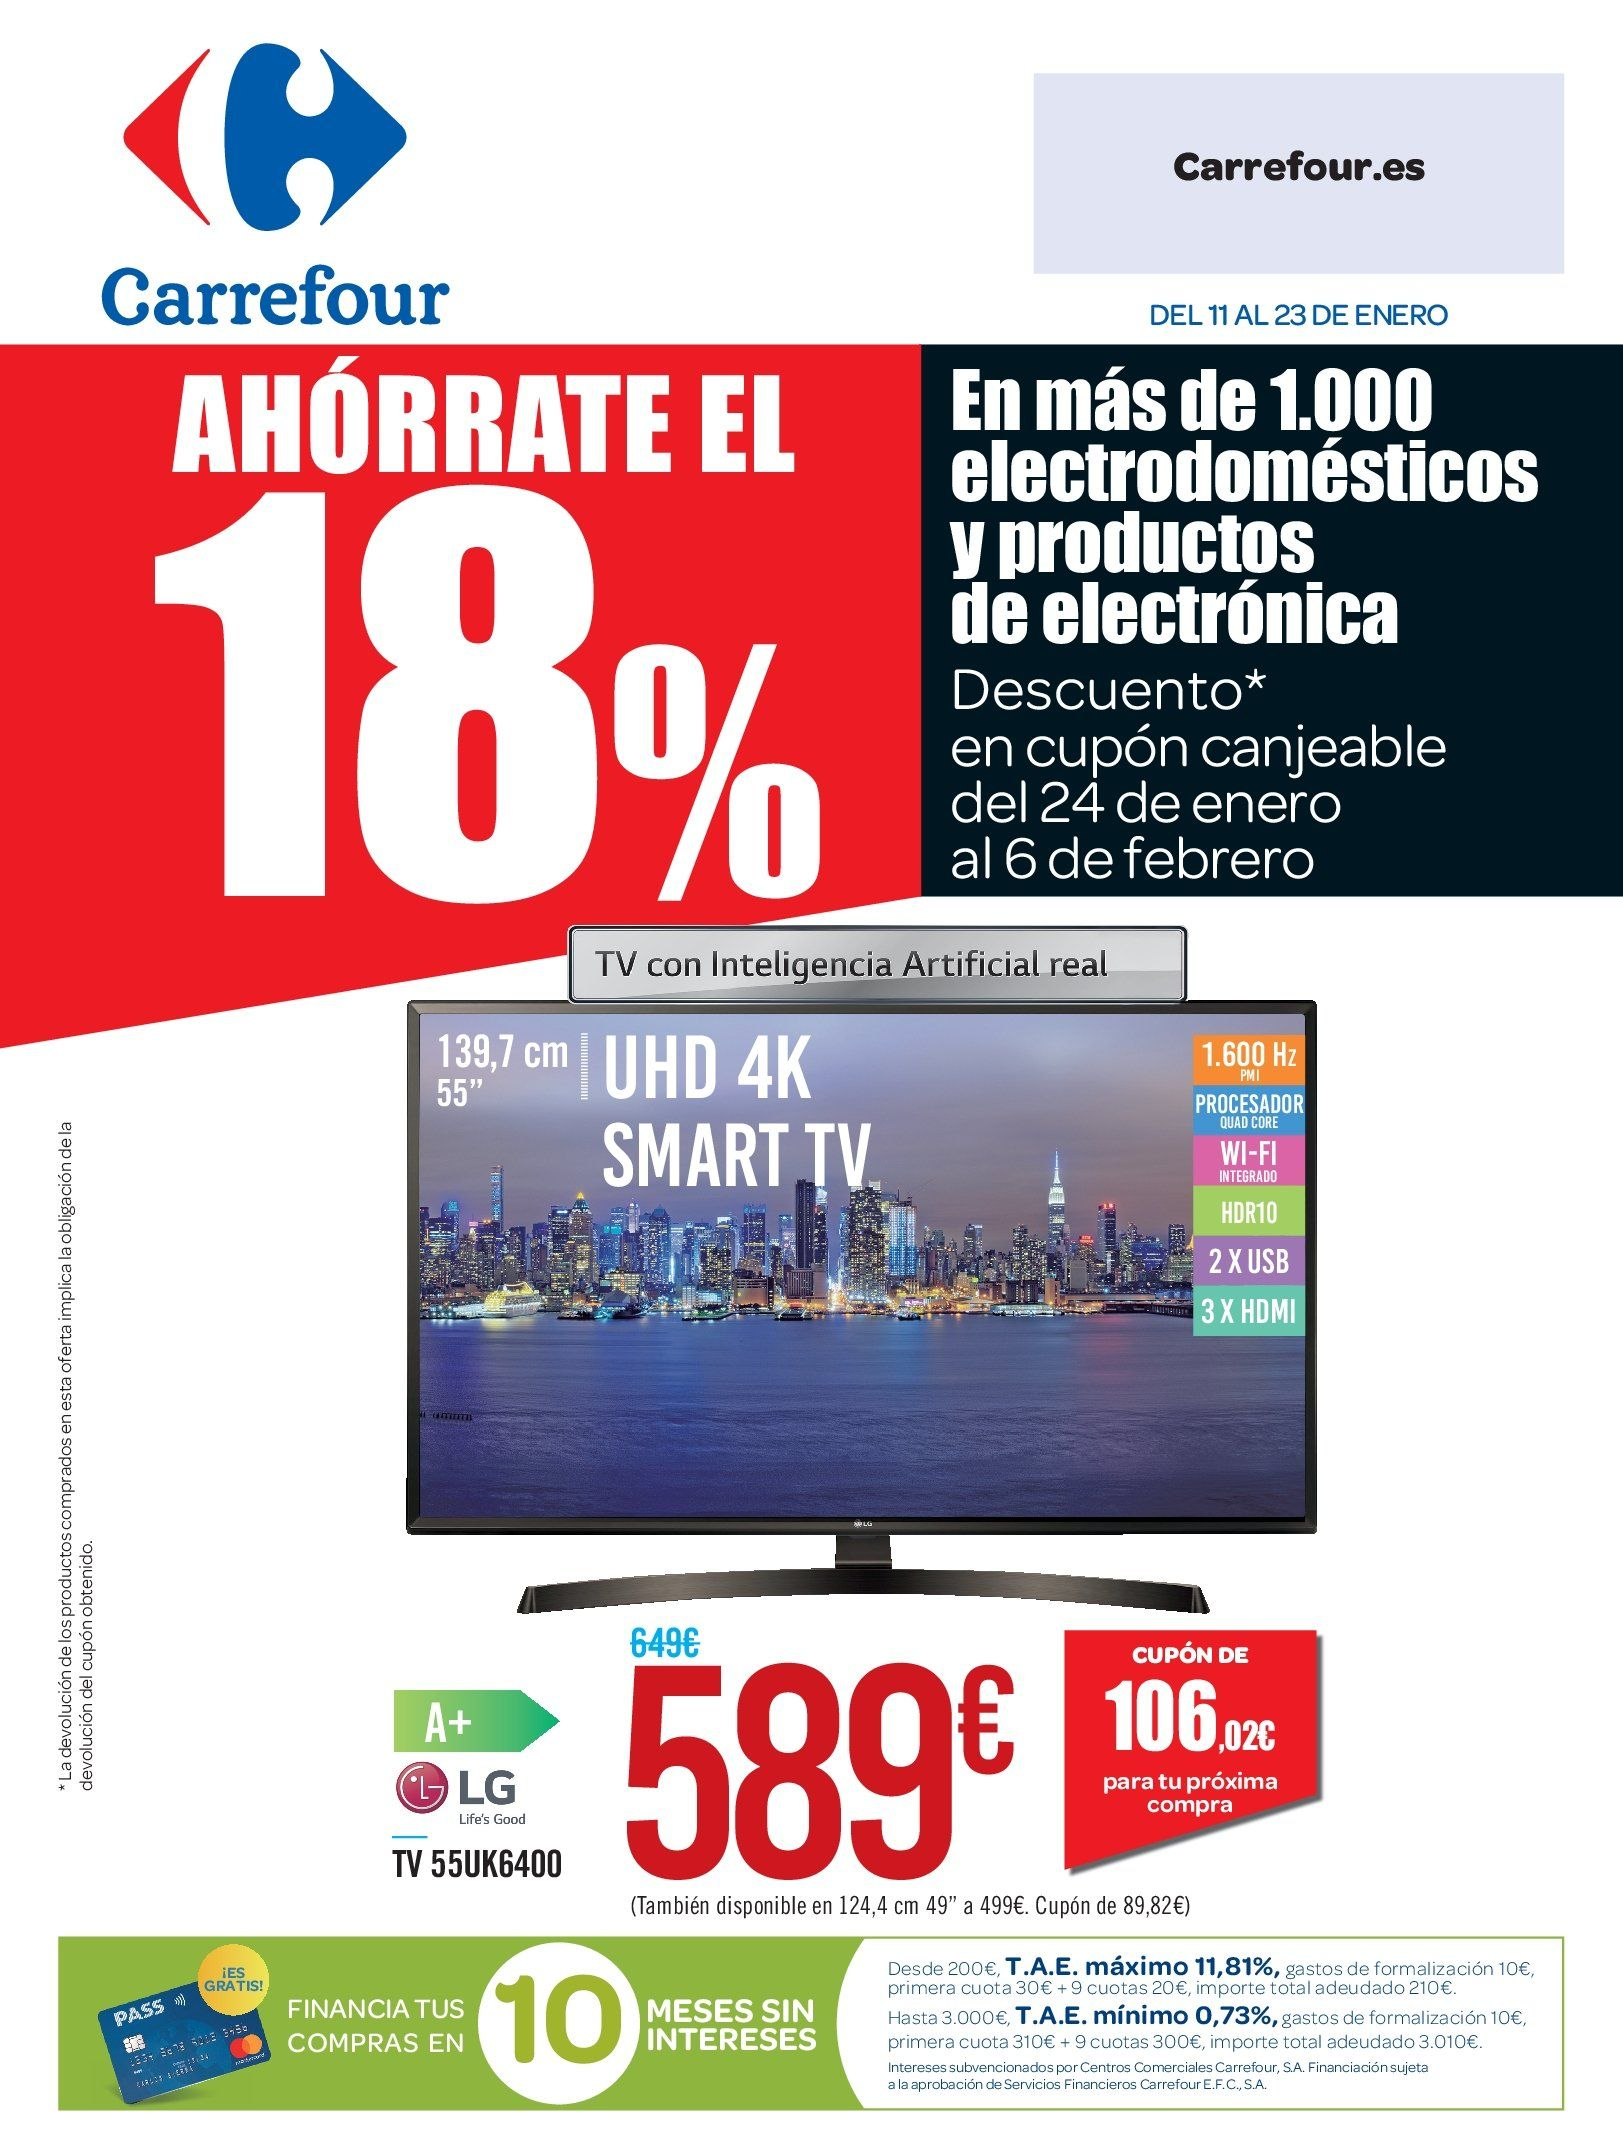 Folleto actual Carrefour - 11.1.2019 - 23.1.2019 - Ventas - hdmi 6fdfef4344c4